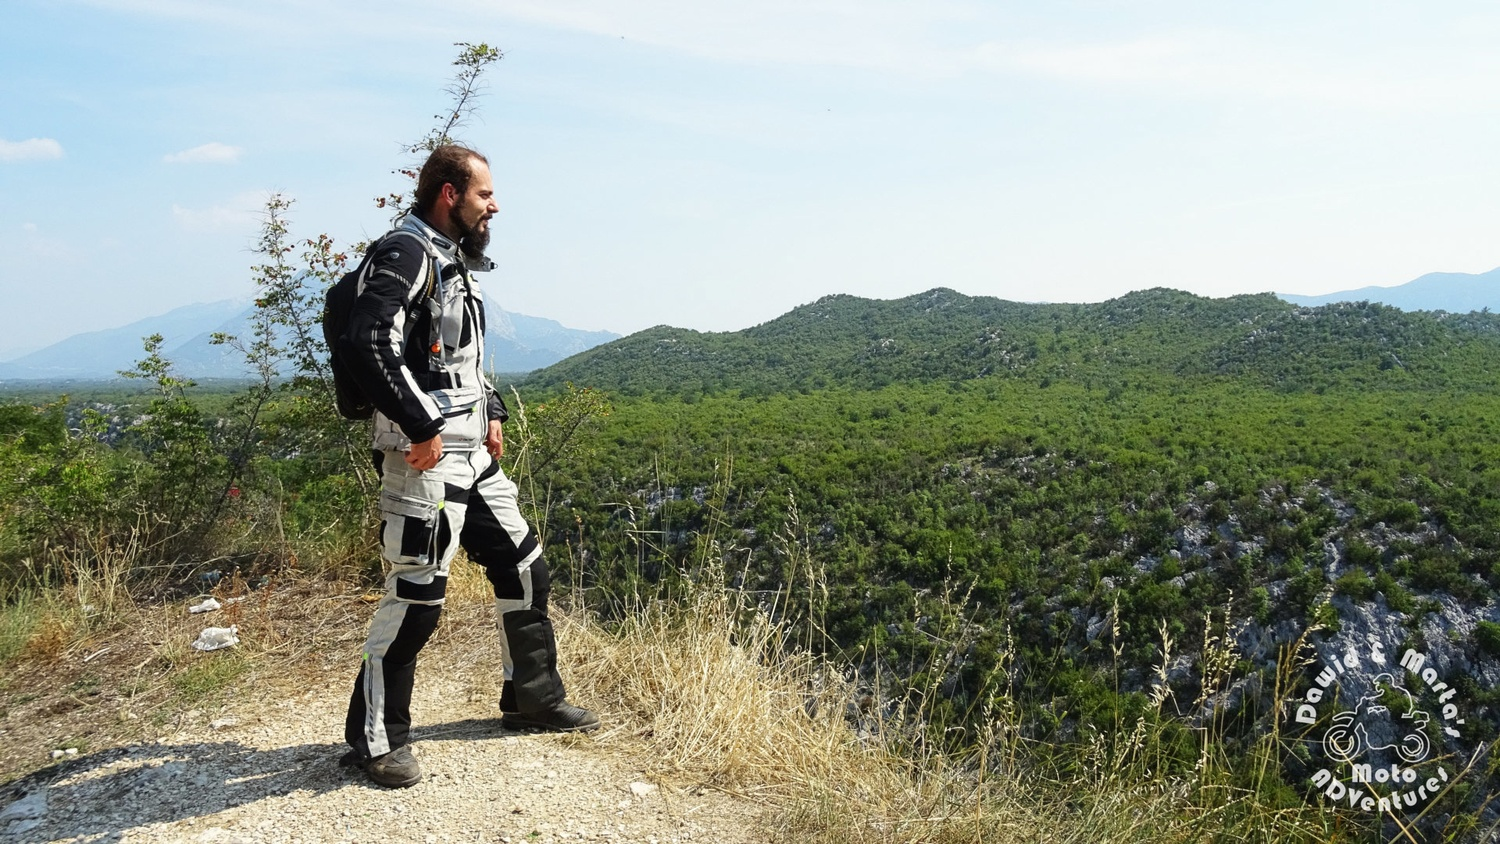 Motorcylist on the vantage point on the Cetina River canyon